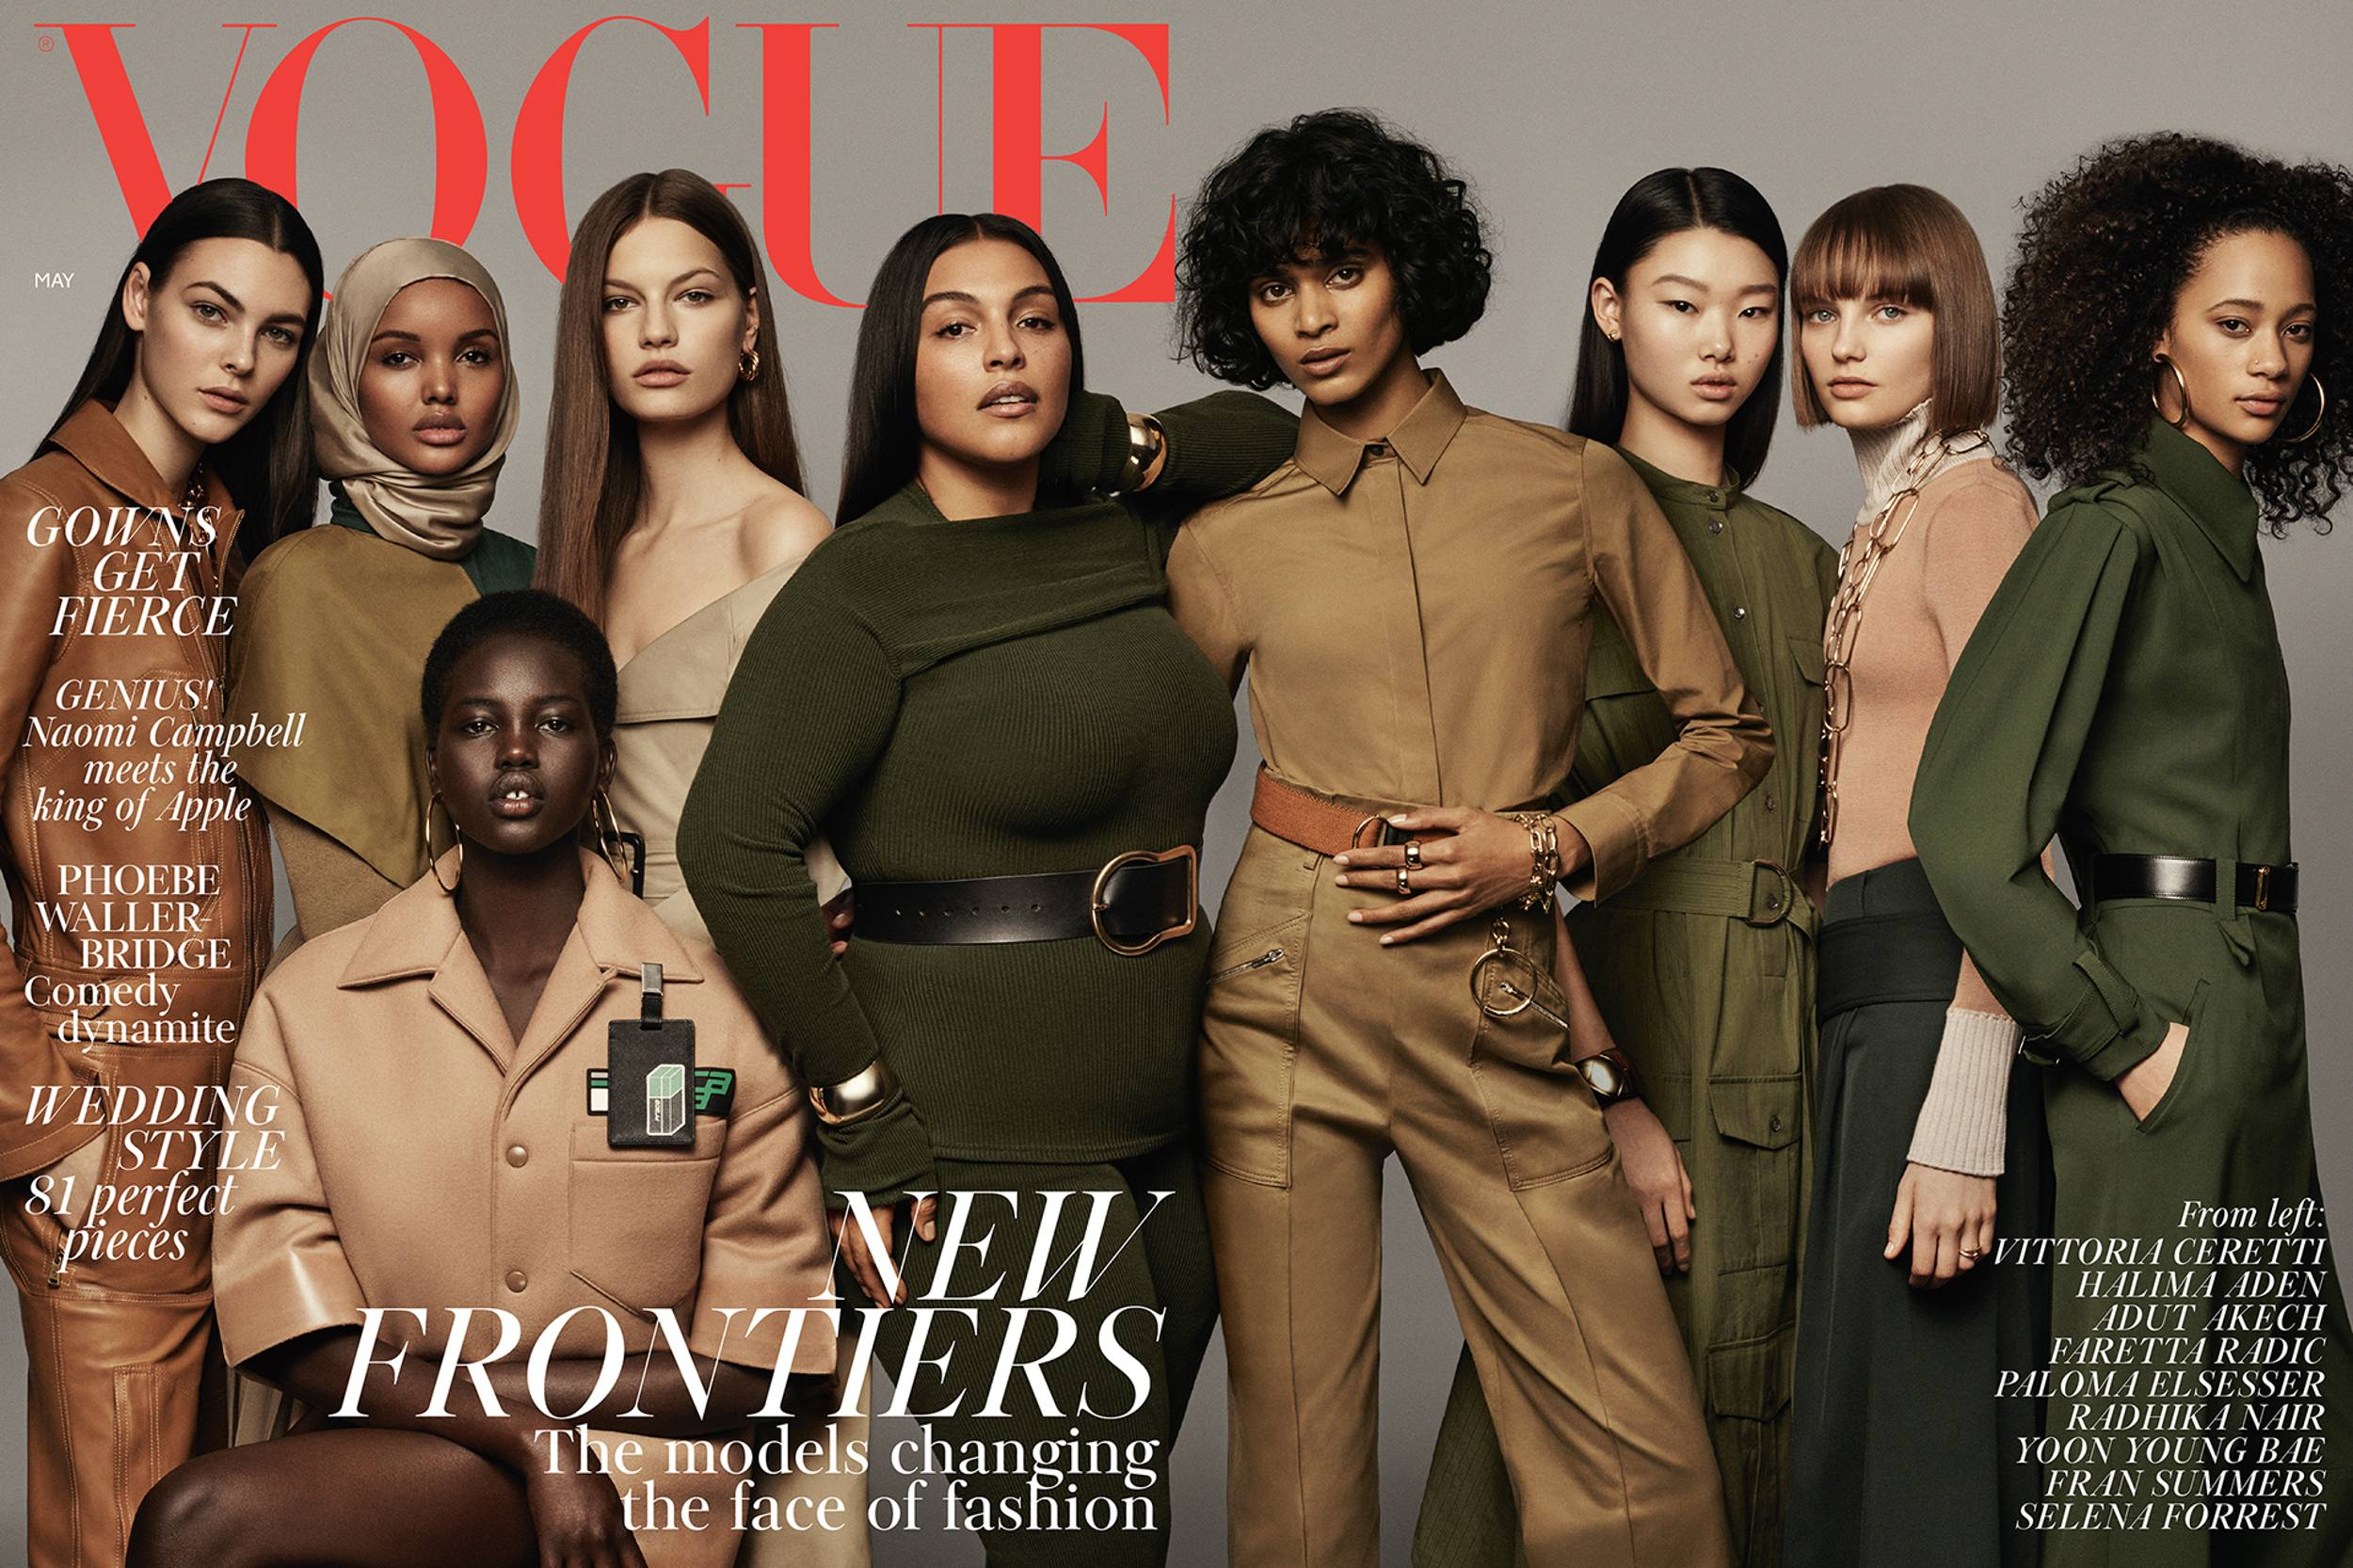 new frontiers in fashion - Halima broke barriers as the first hijabi model on the cover of British Vogue, challenging industry norms and working to define the face of fashion for a new generation.Learn more →